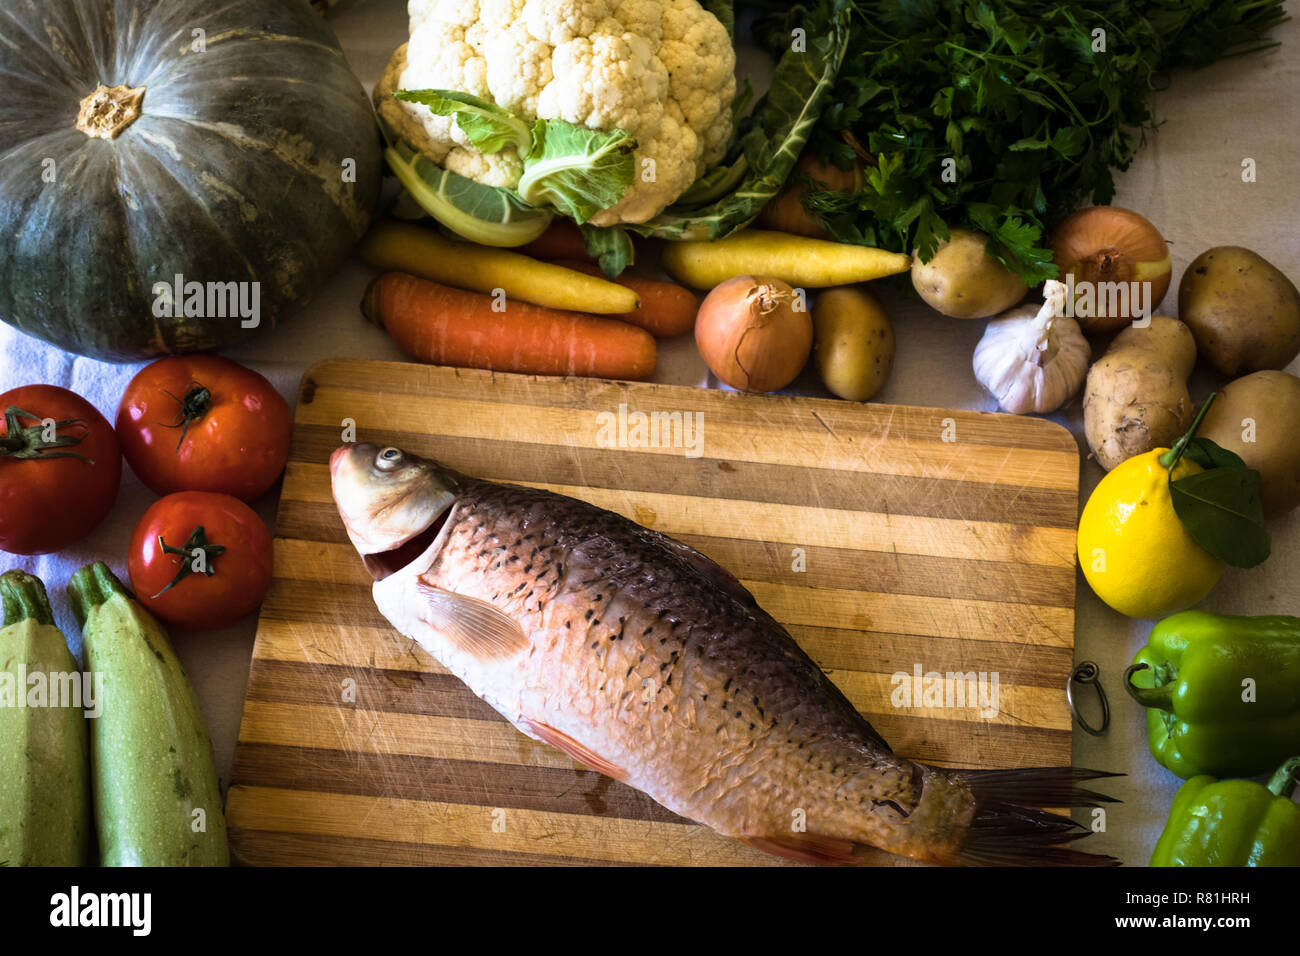 fresh fish and raw vegetables - Stock Image